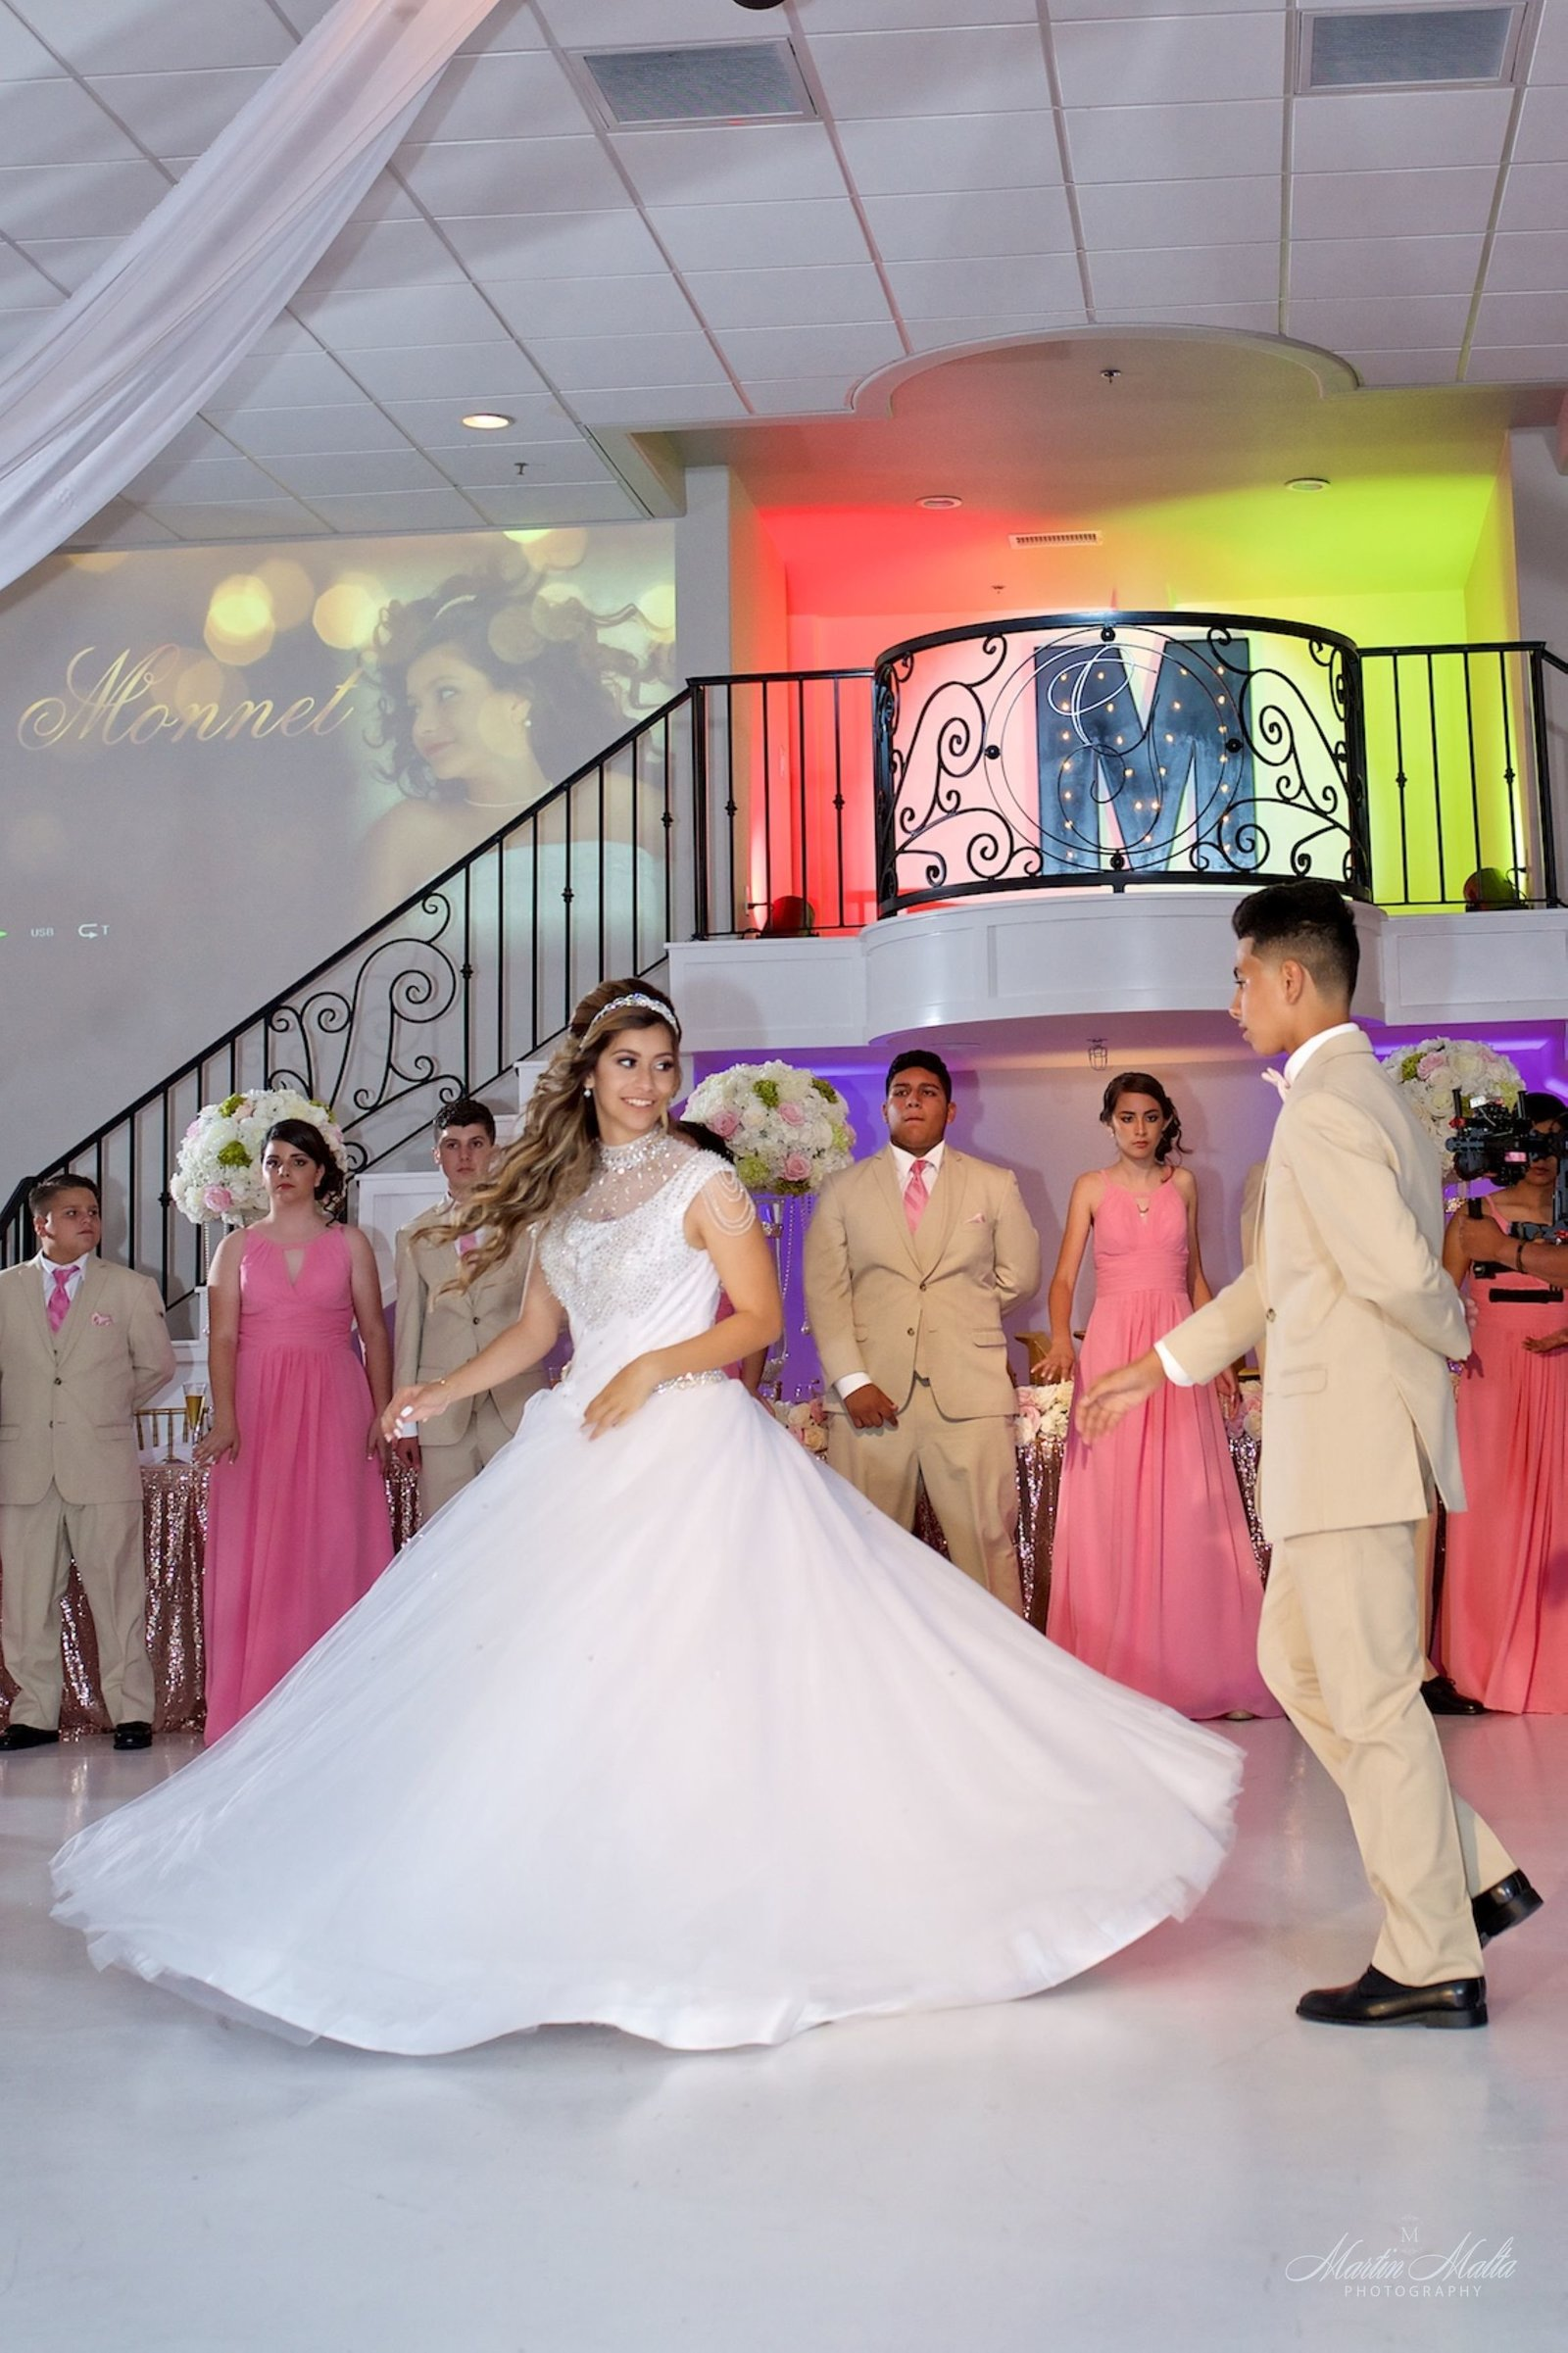 photography-photographer-wedding-quinceanera-xv-131